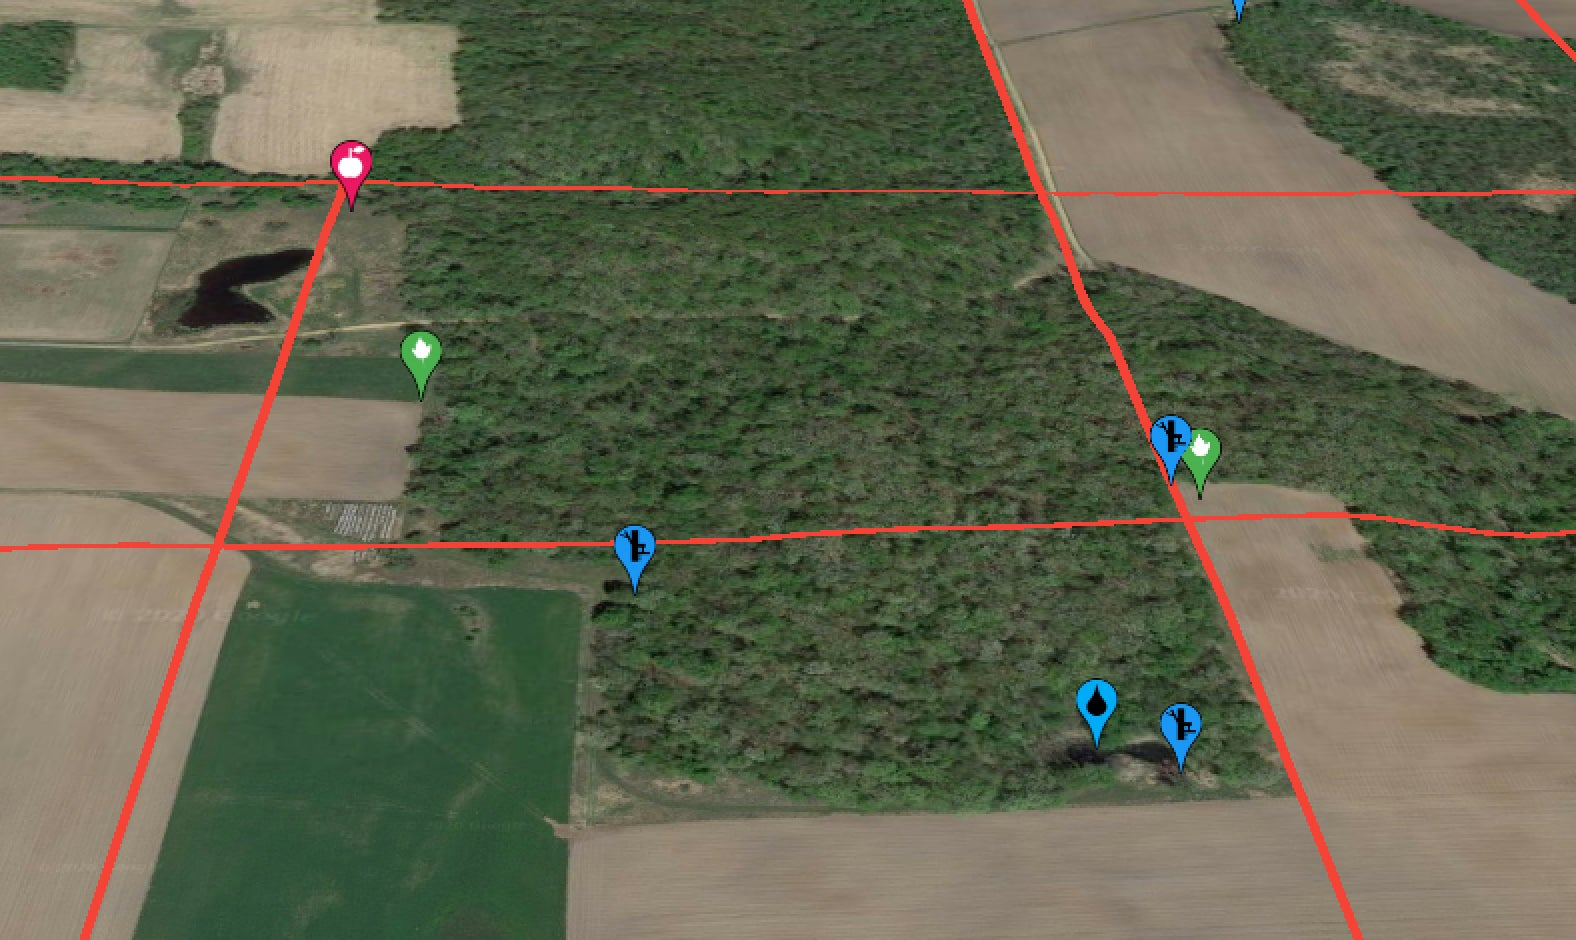 Satellite image of agricultural fields and timber with waypoints and red property line grids.